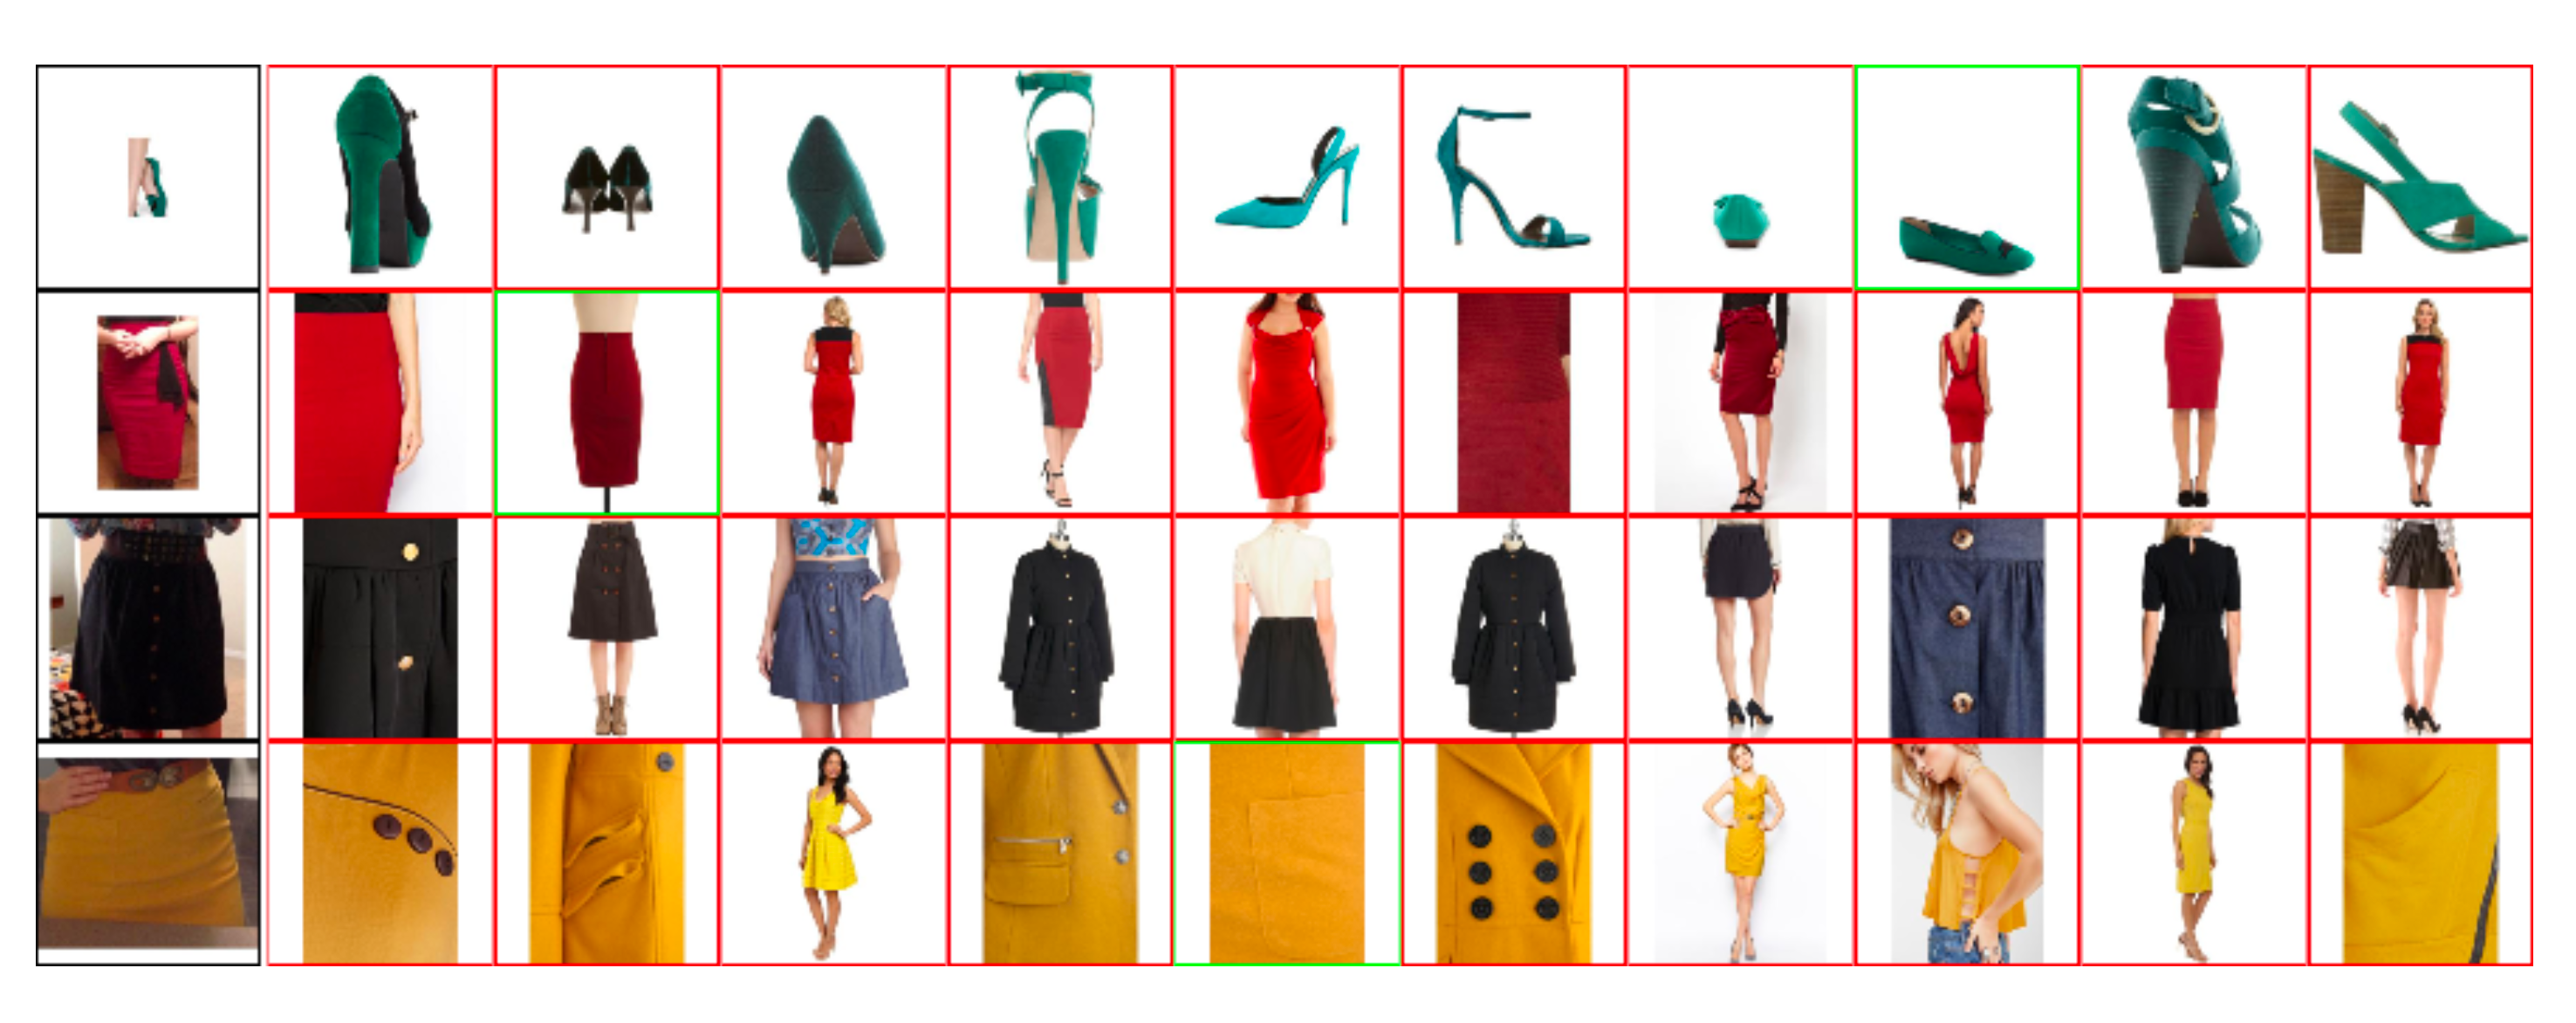 Examples of retrieval on the Street2Shop dataset produced by our best model on 320x320 images